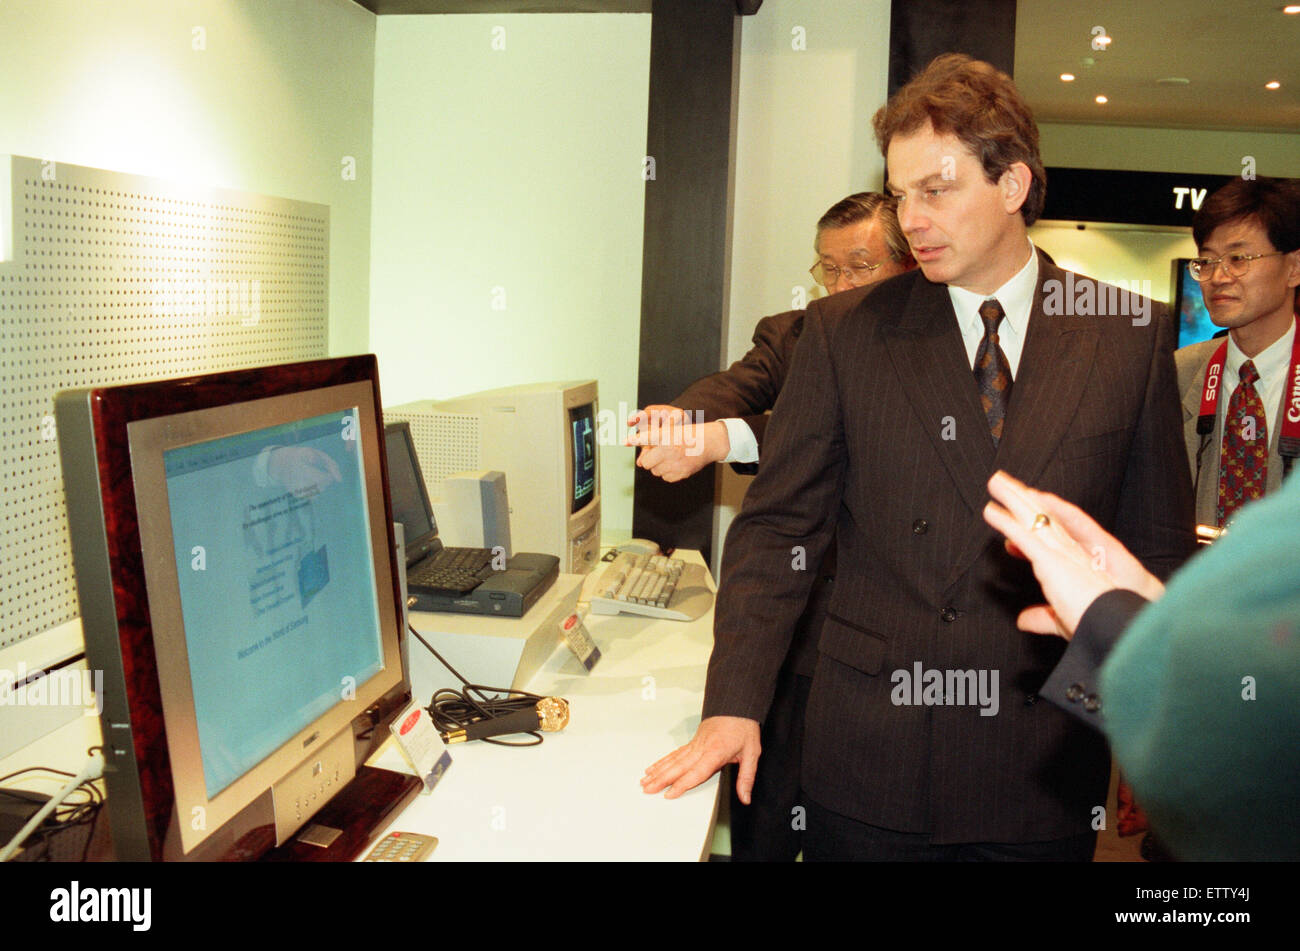 Tony Blair officially opens the Samsung training centre at Wynyard. 20th December 1996. - Stock Image